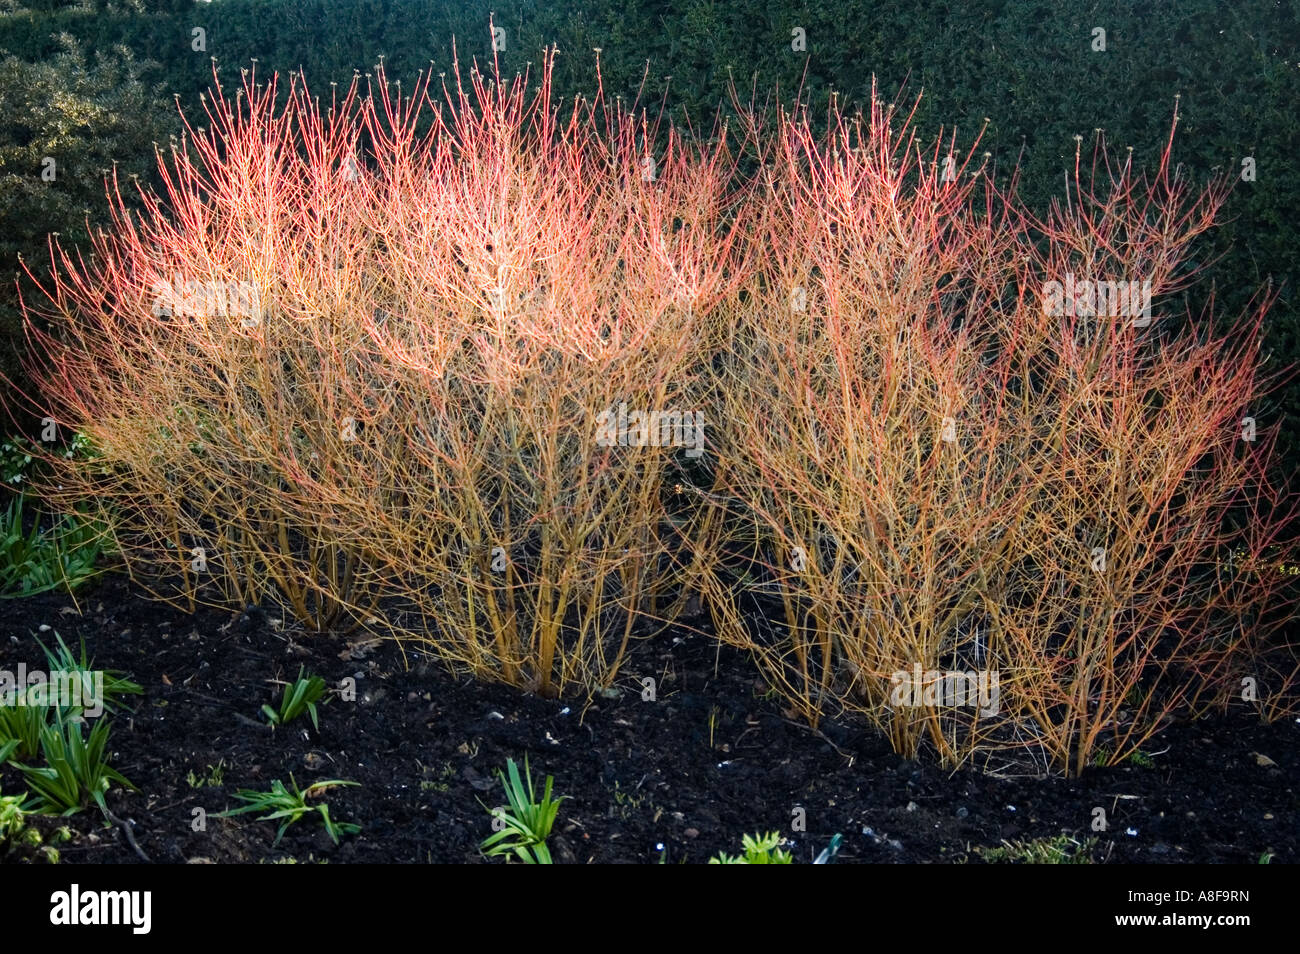 CORNUS SANGUINEA MIDWINTER FIRE BROADVIEW GARDENS HADLOW COLLEDGE TONBRIDGE  KENT